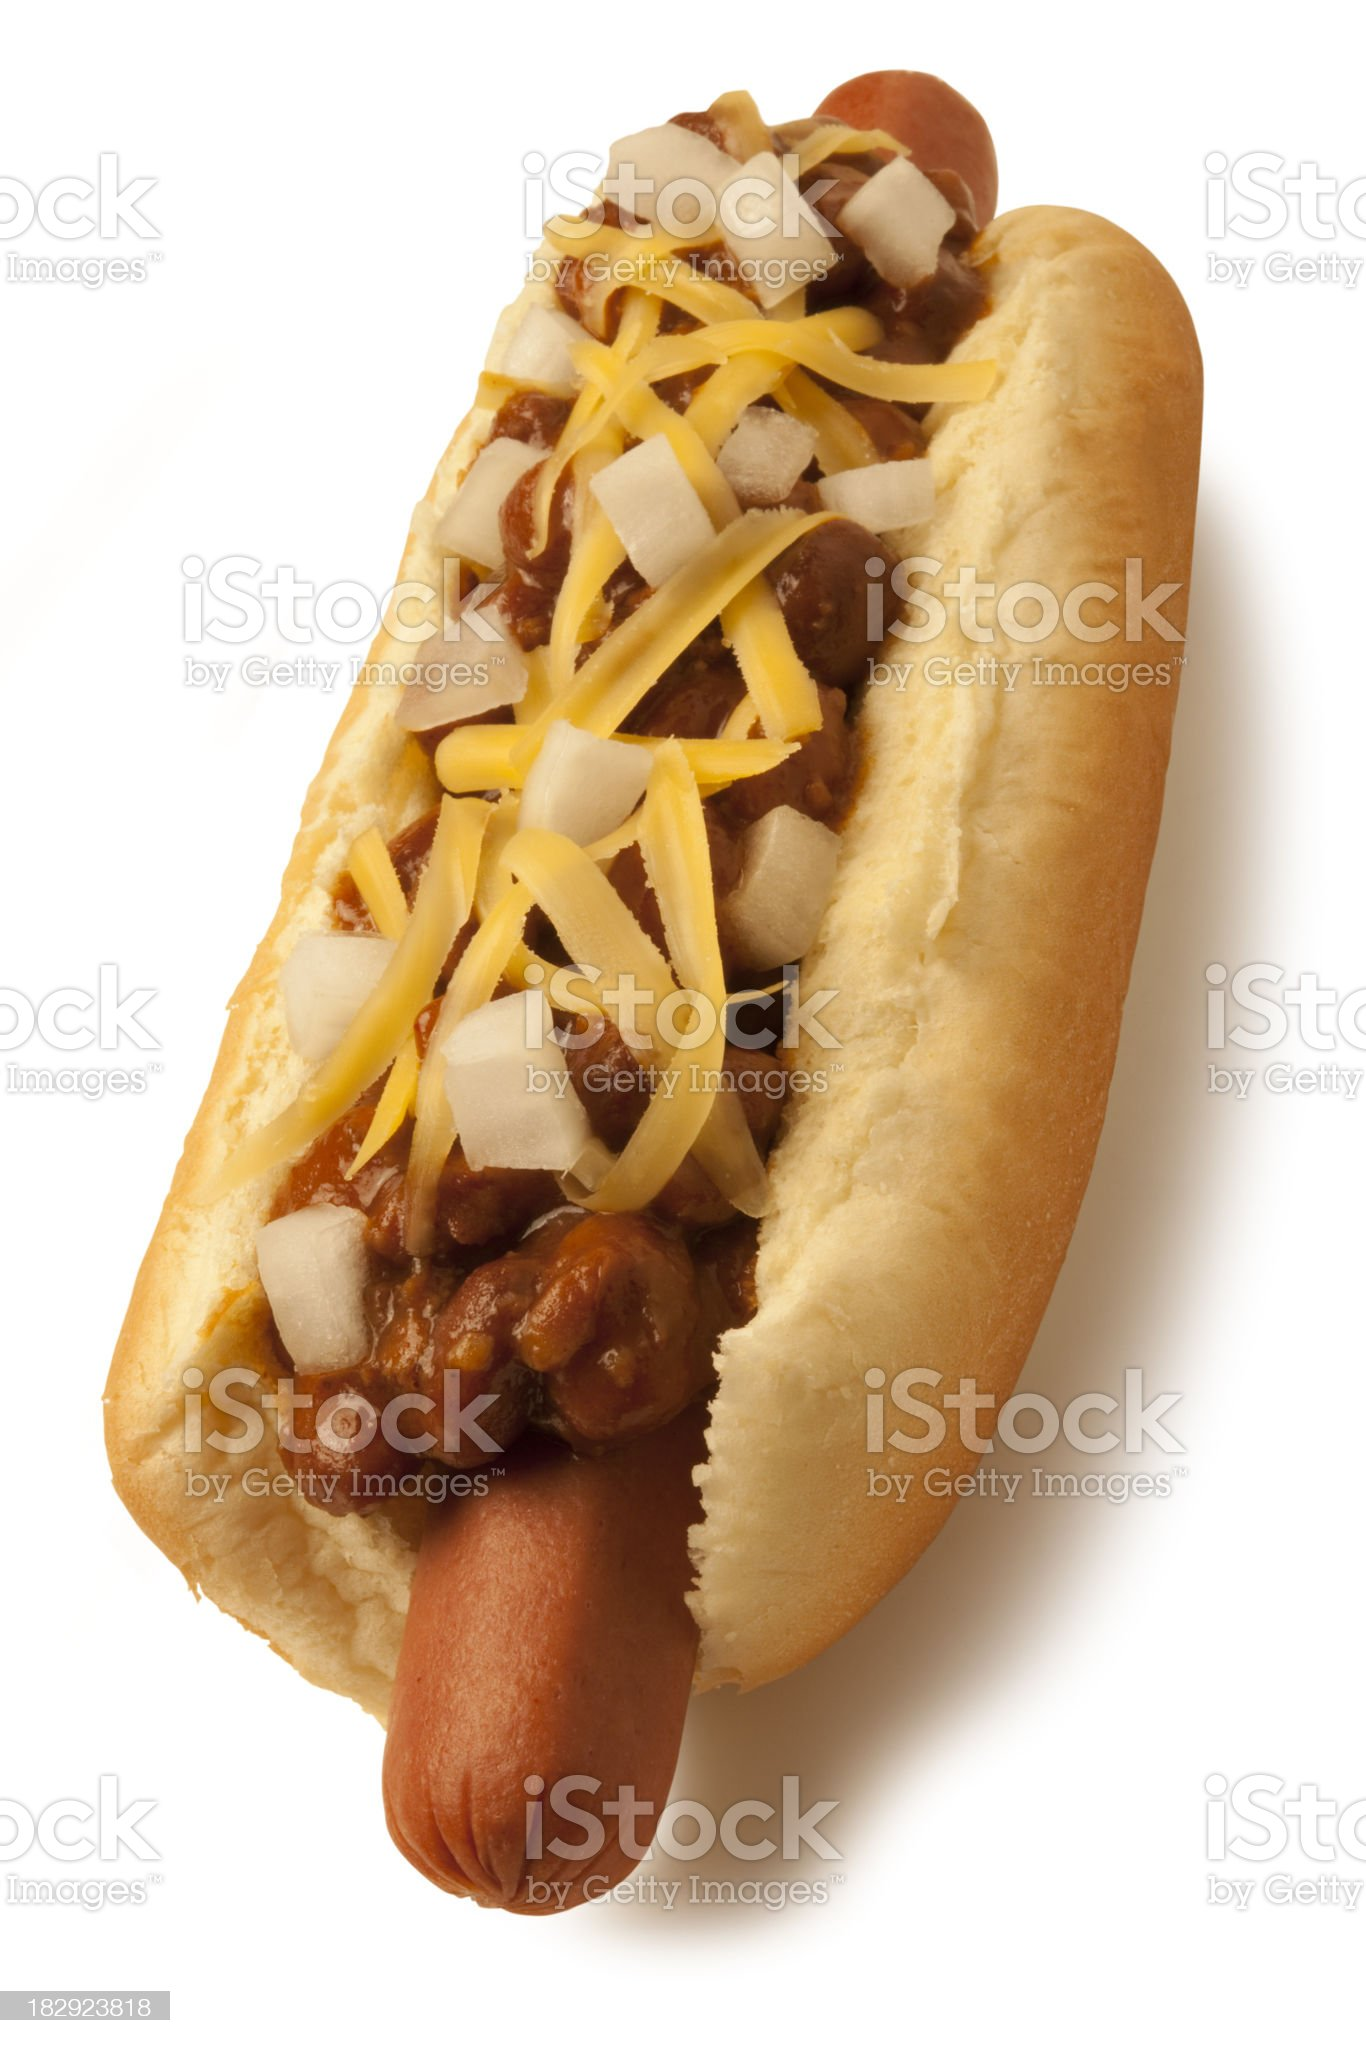 Chili Cheese Dog with path royalty-free stock photo